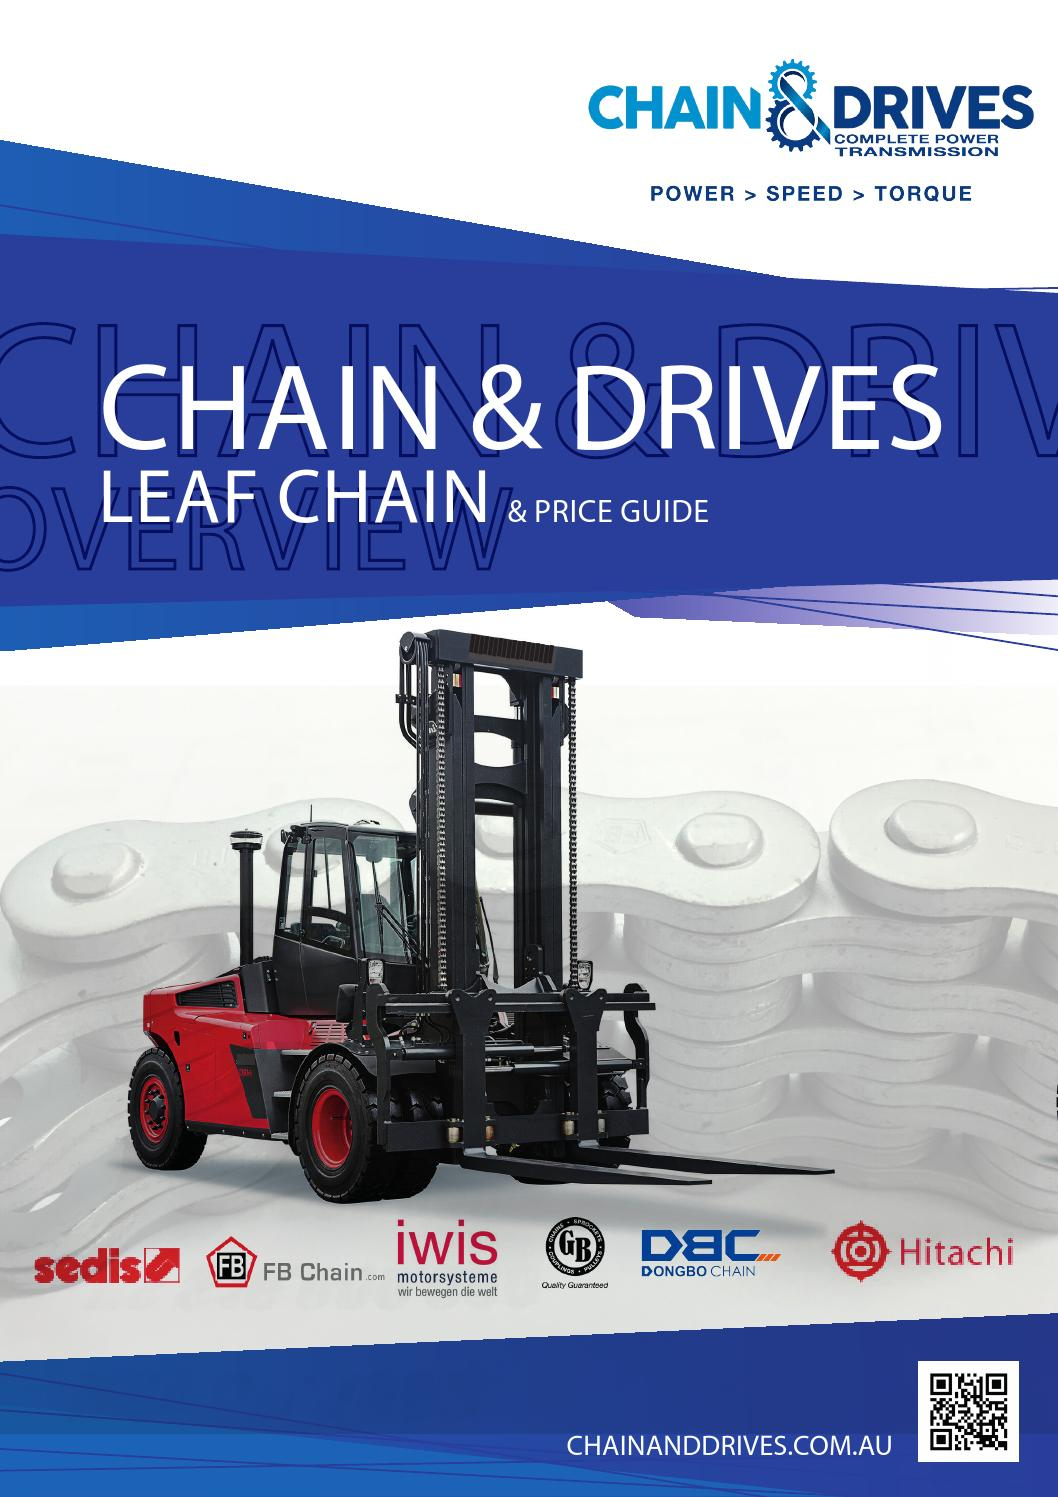 BL666 Leaf Chain 10 Feet For Forklift Masts,Hoisting with 1 Connecting Link